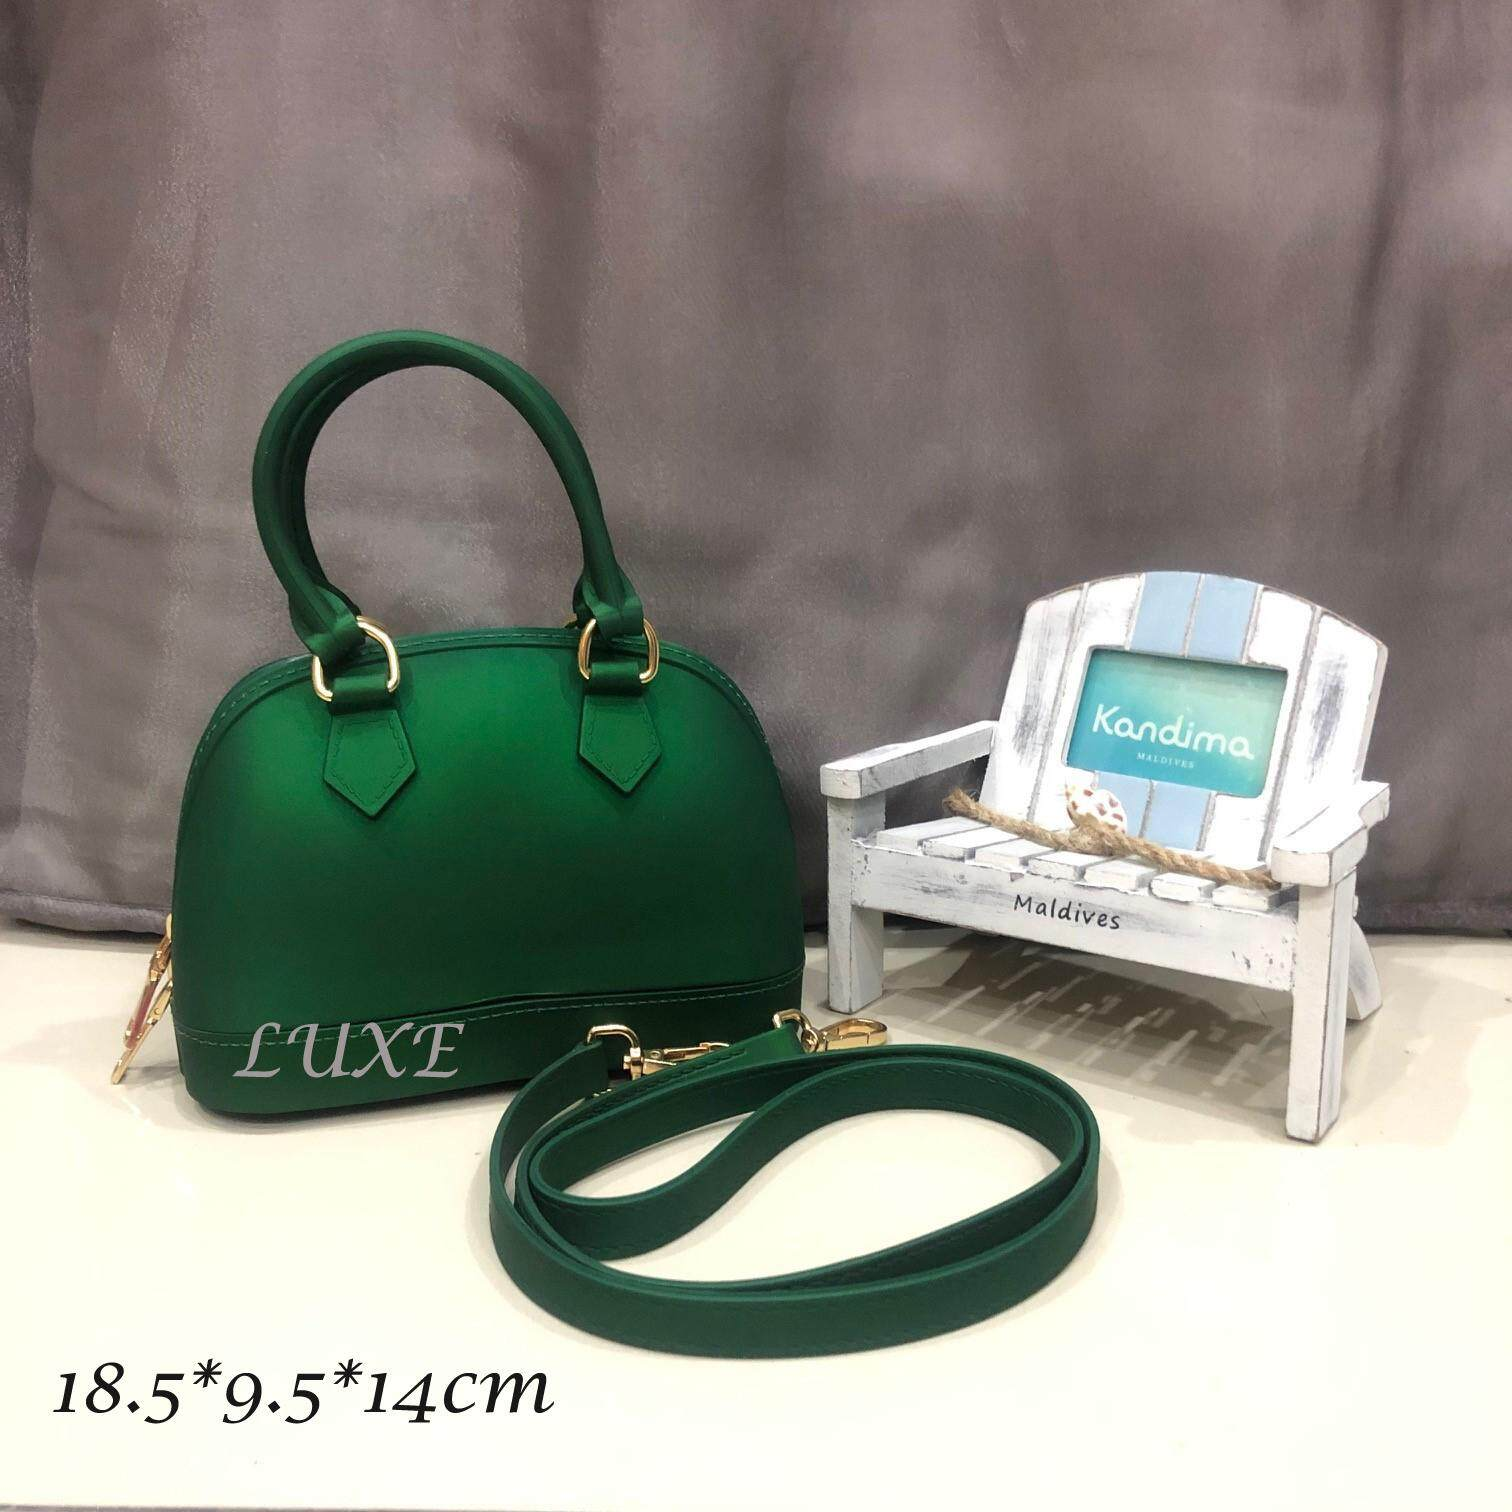 266f80518159 Women Bags - Buy Women Bags at Best Price in Malaysia